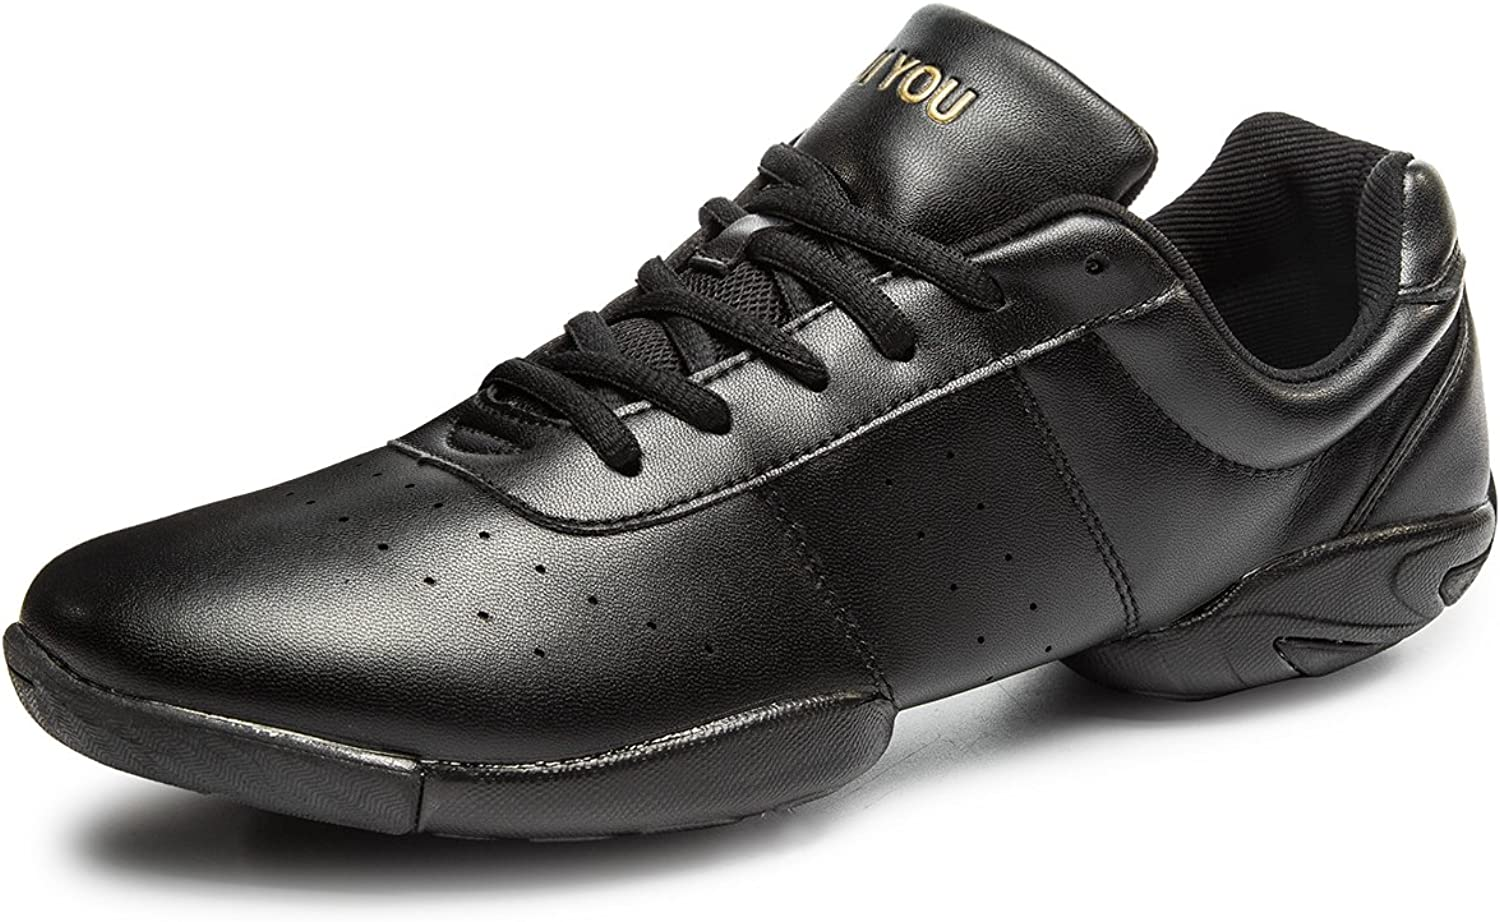 ABDVOOD Womens Fitness Jazz Dance shoes Leather Upper Ballroom Modern Dancing Sneaker by